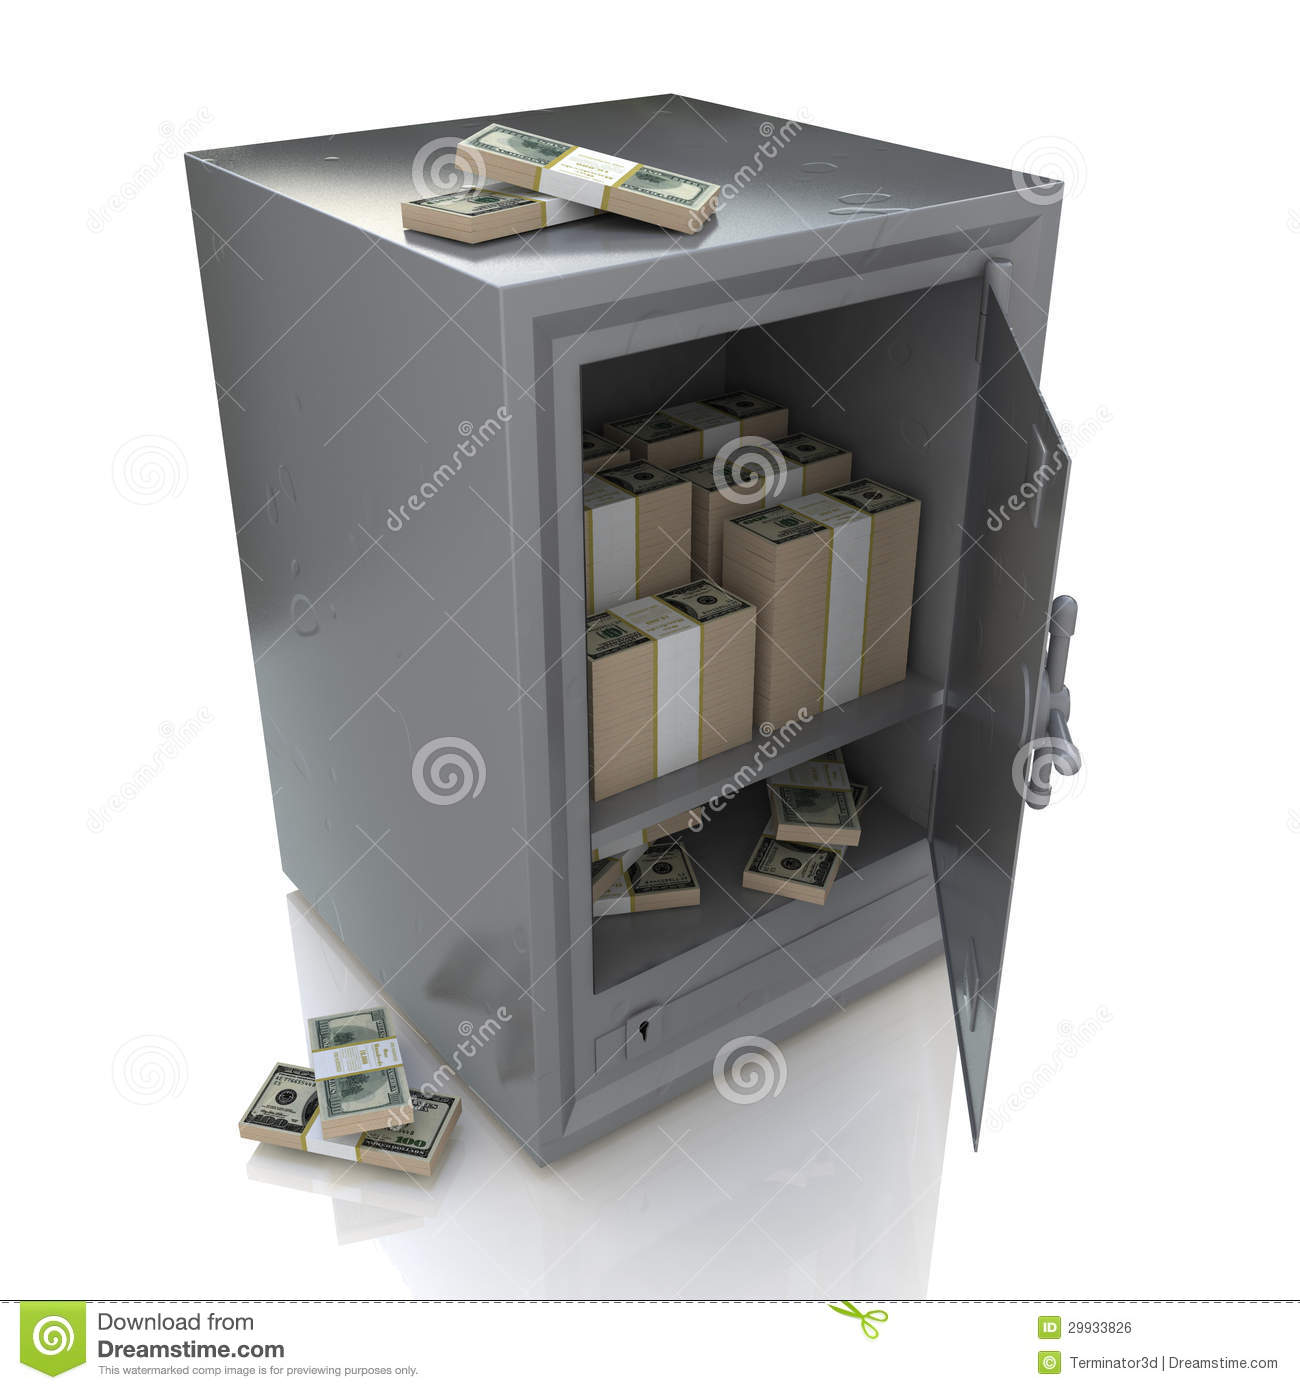 used chubb safes - you want to consider your budget when you are selecting a home safe youmay find some cheap home safes that are suitable for your needs